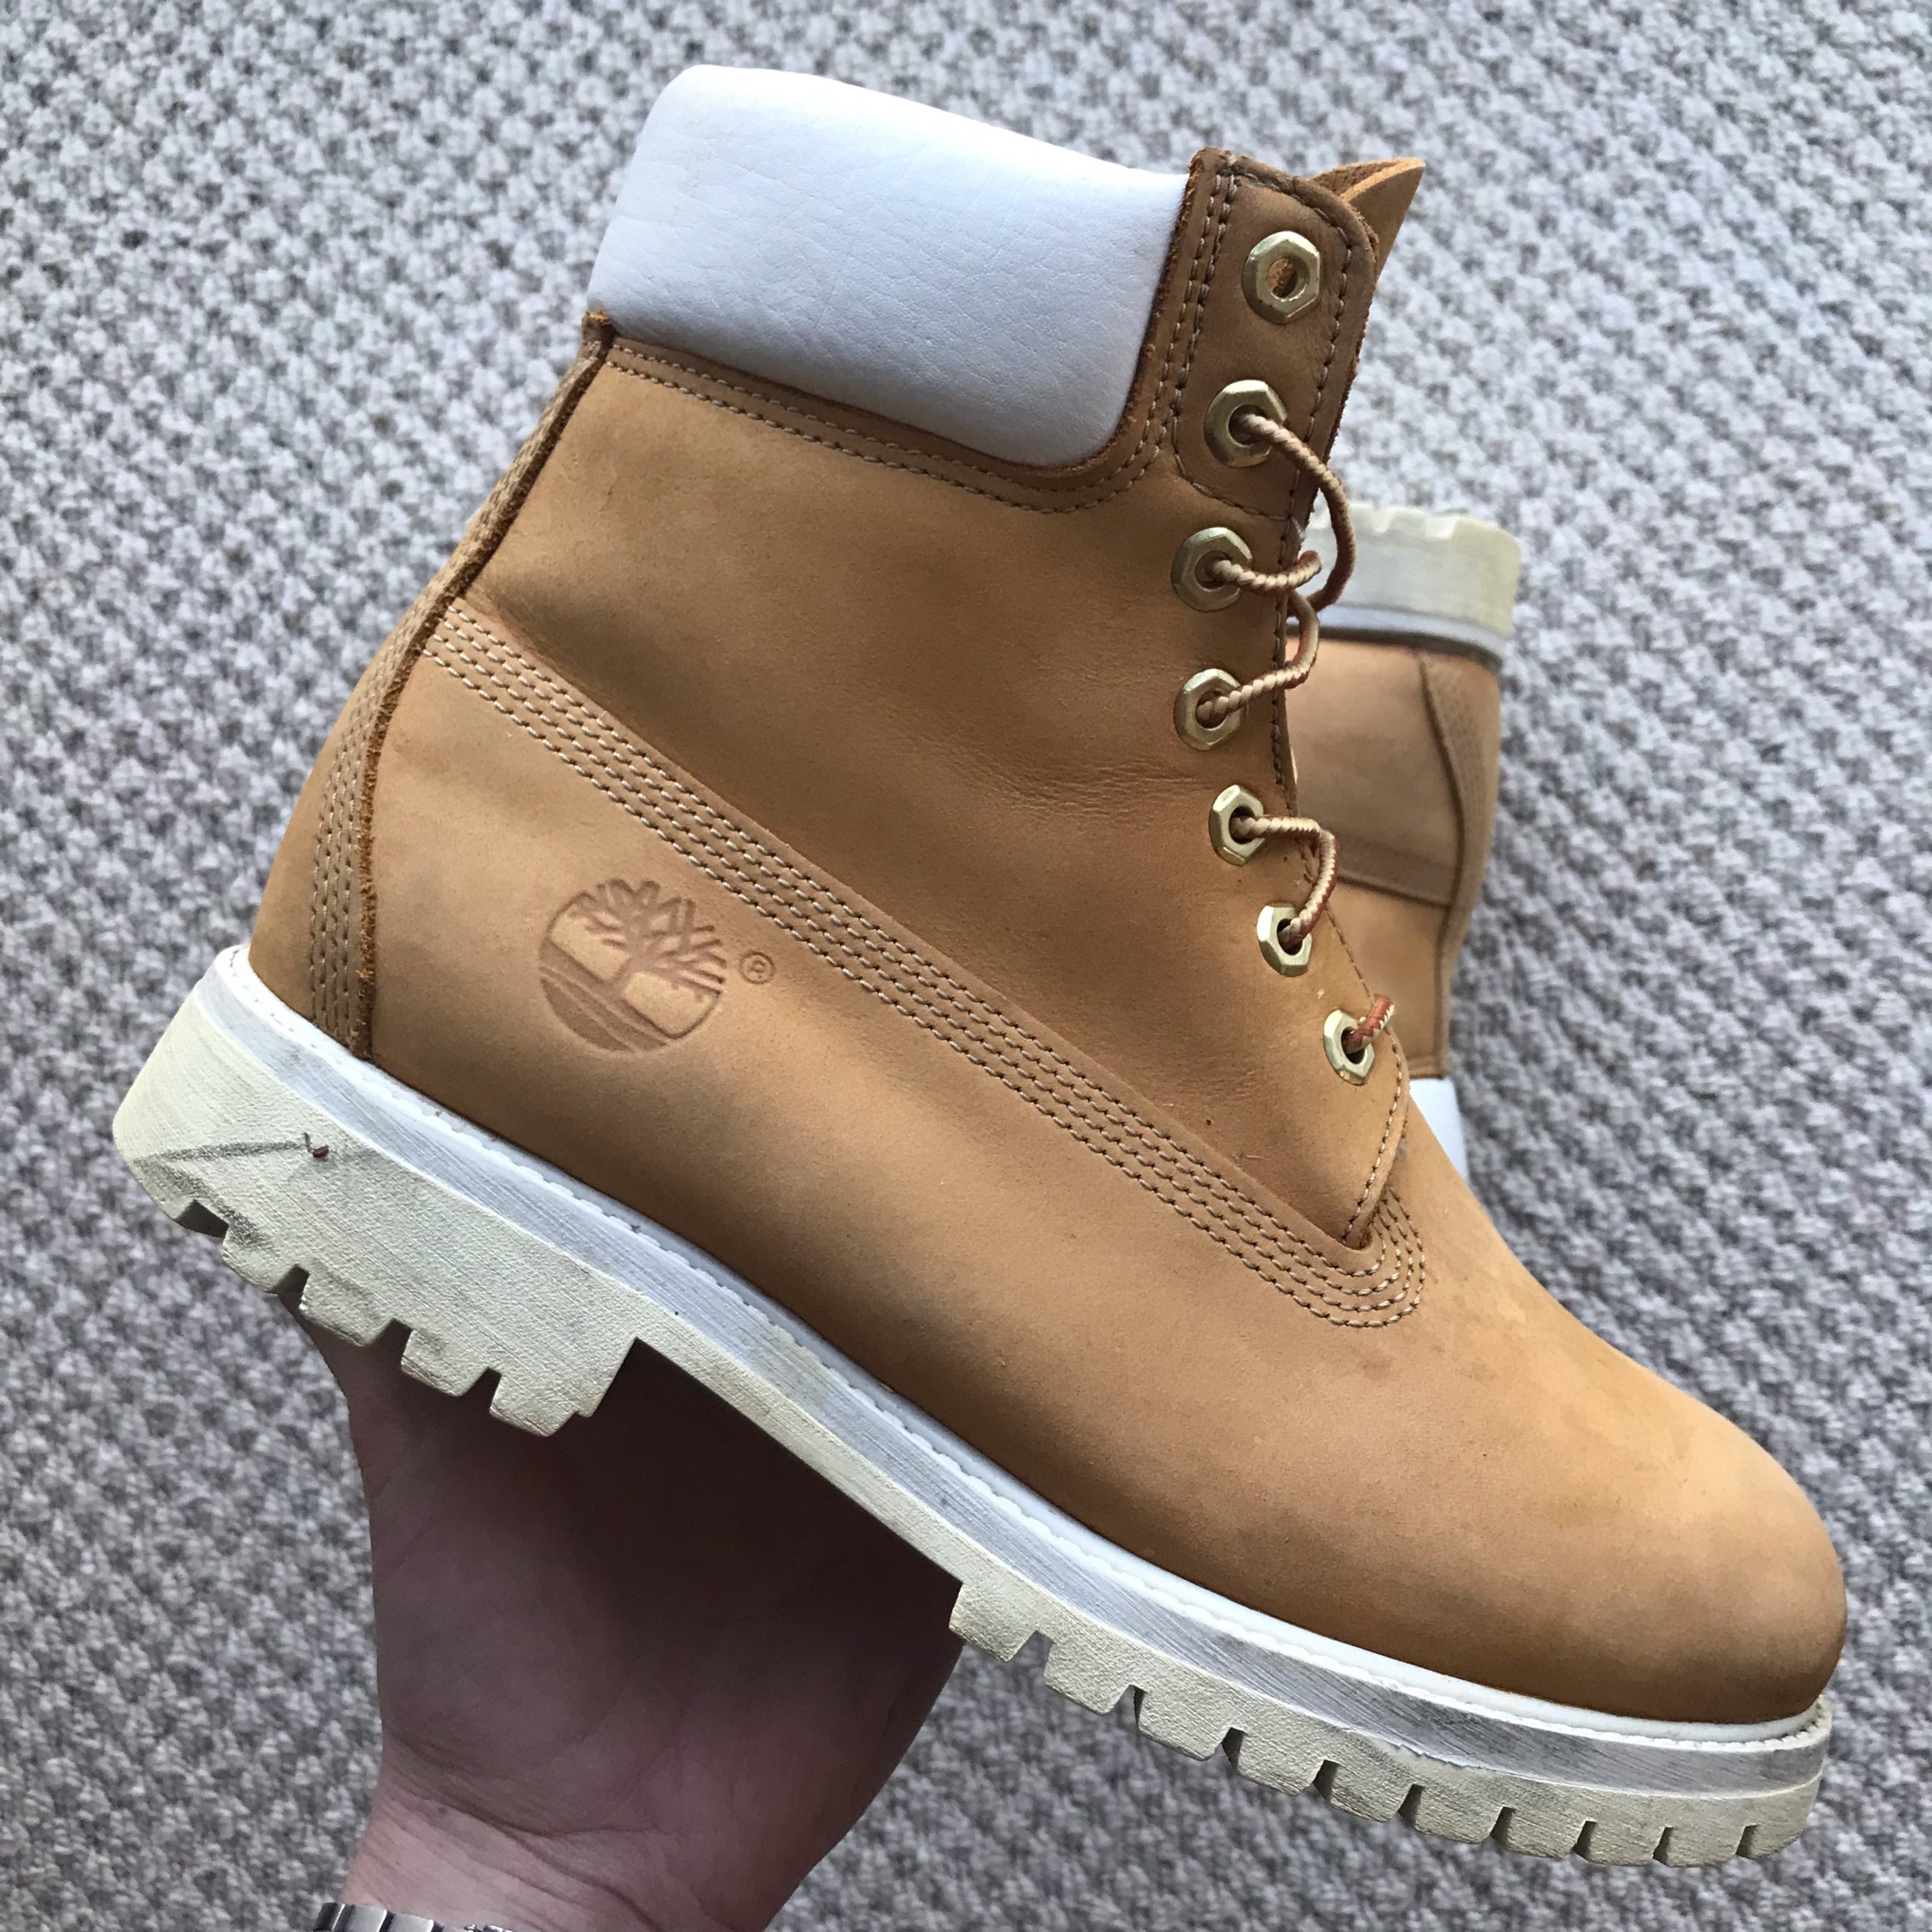 Timberland Wheat White Suede 6 Inch